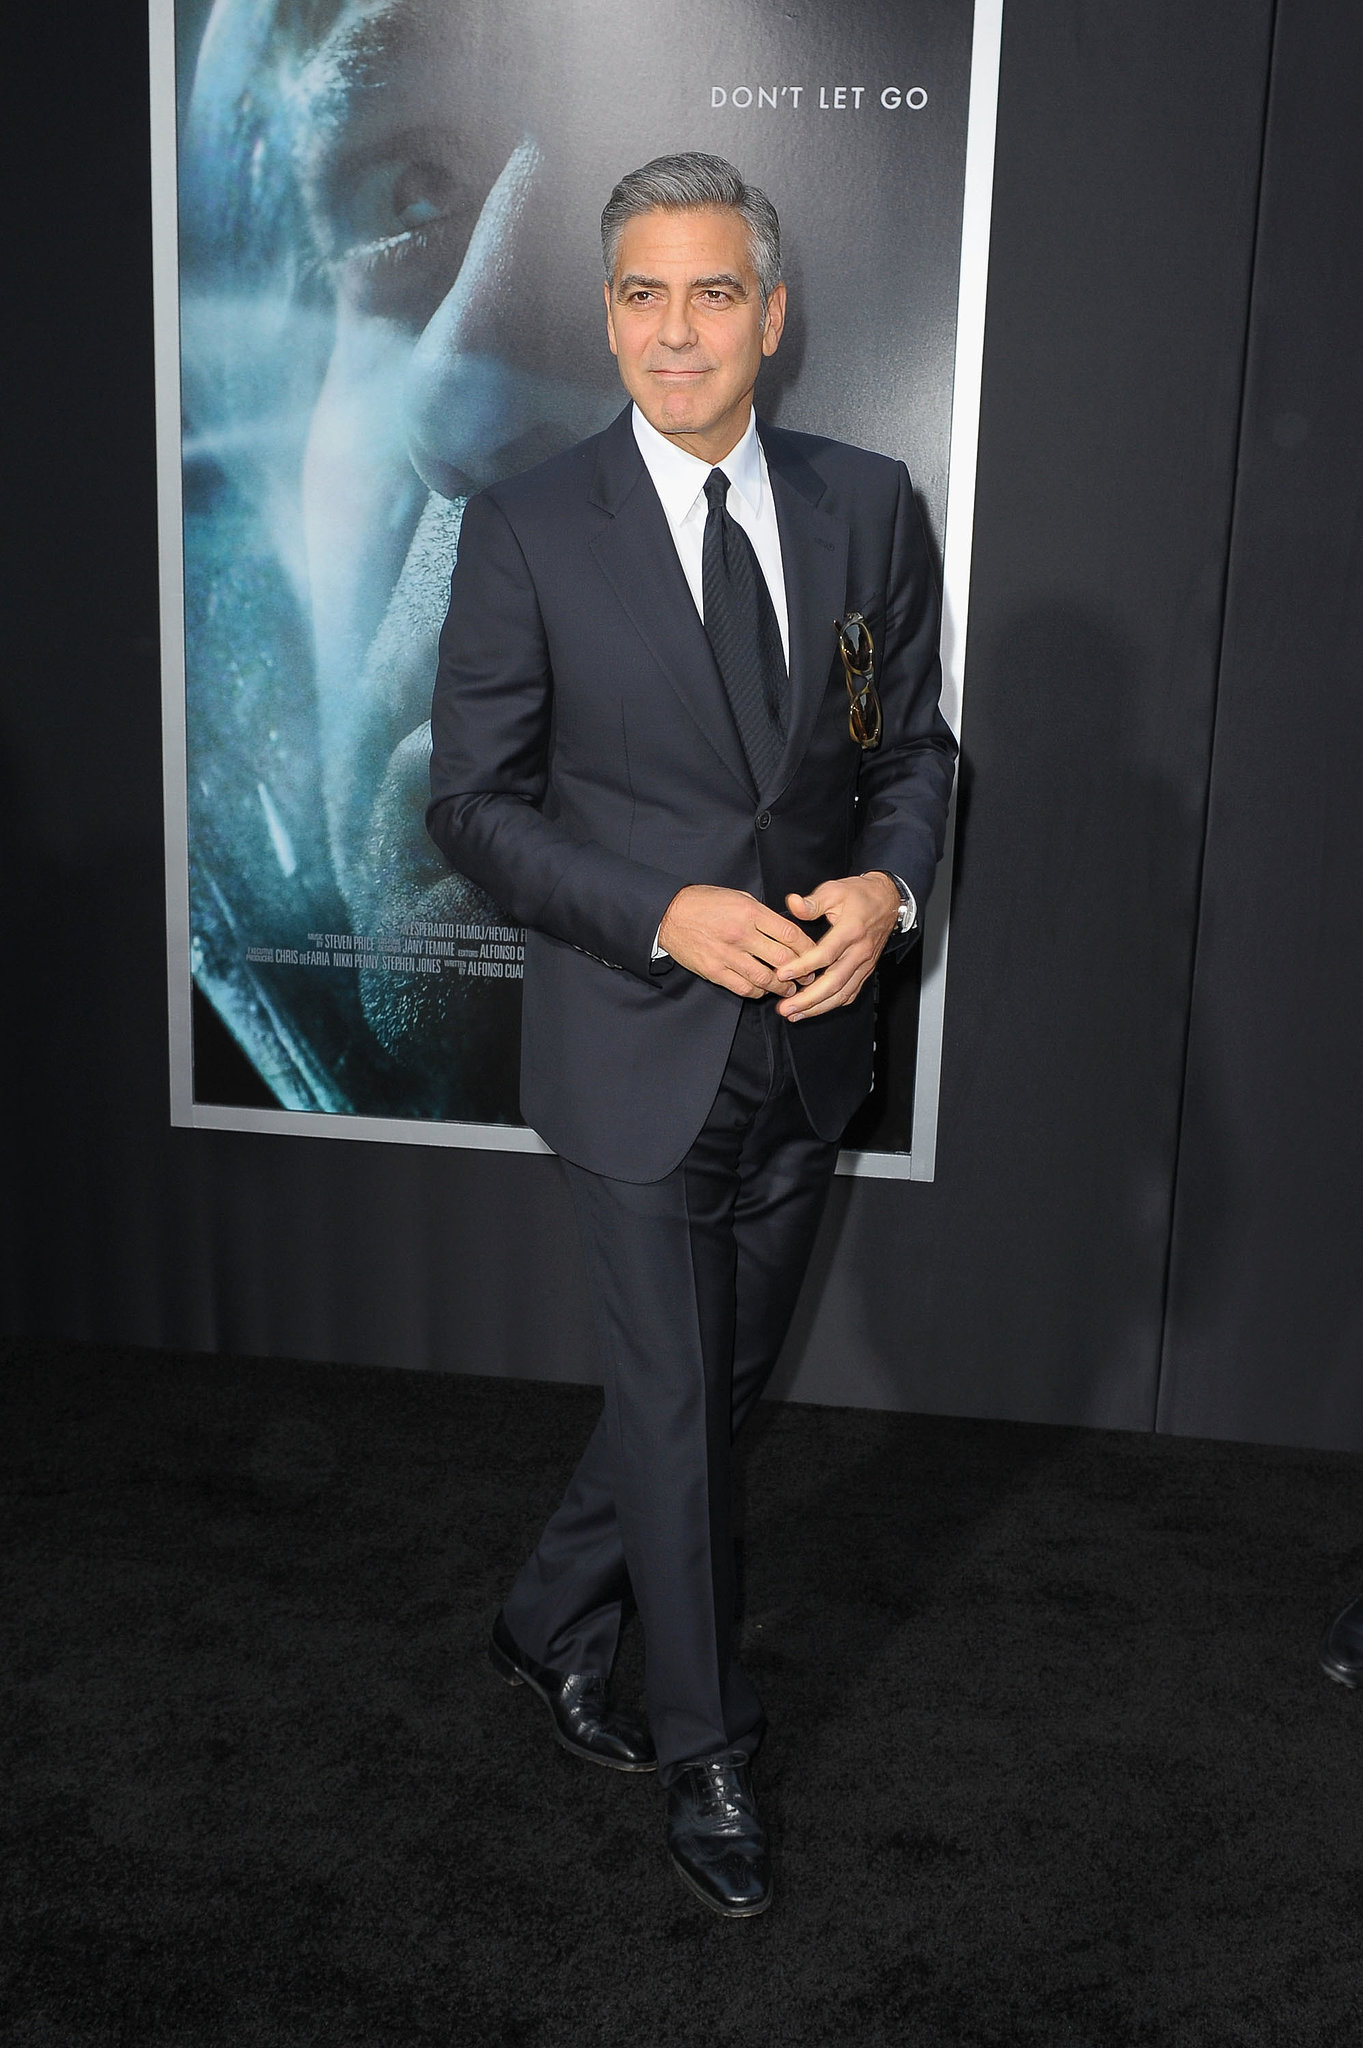 George clooney looked dapper in a full suit at the premiere of gravity